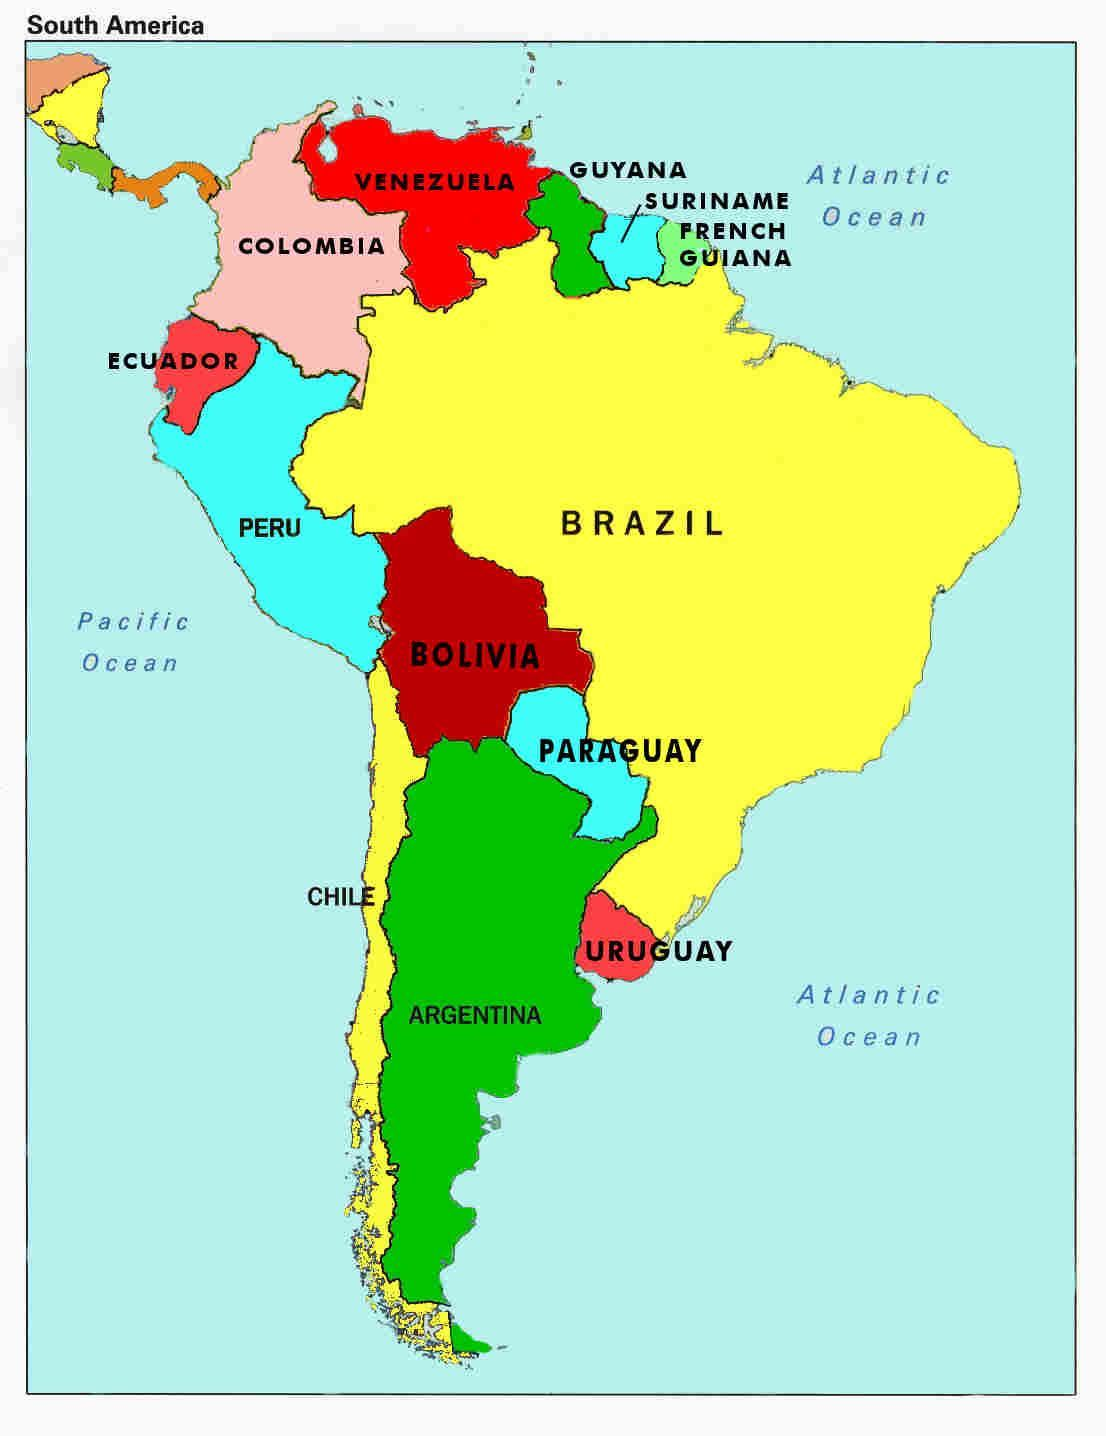 Countries In South America Map Pin by bonnie_bonkins on Learn • Geography | America map